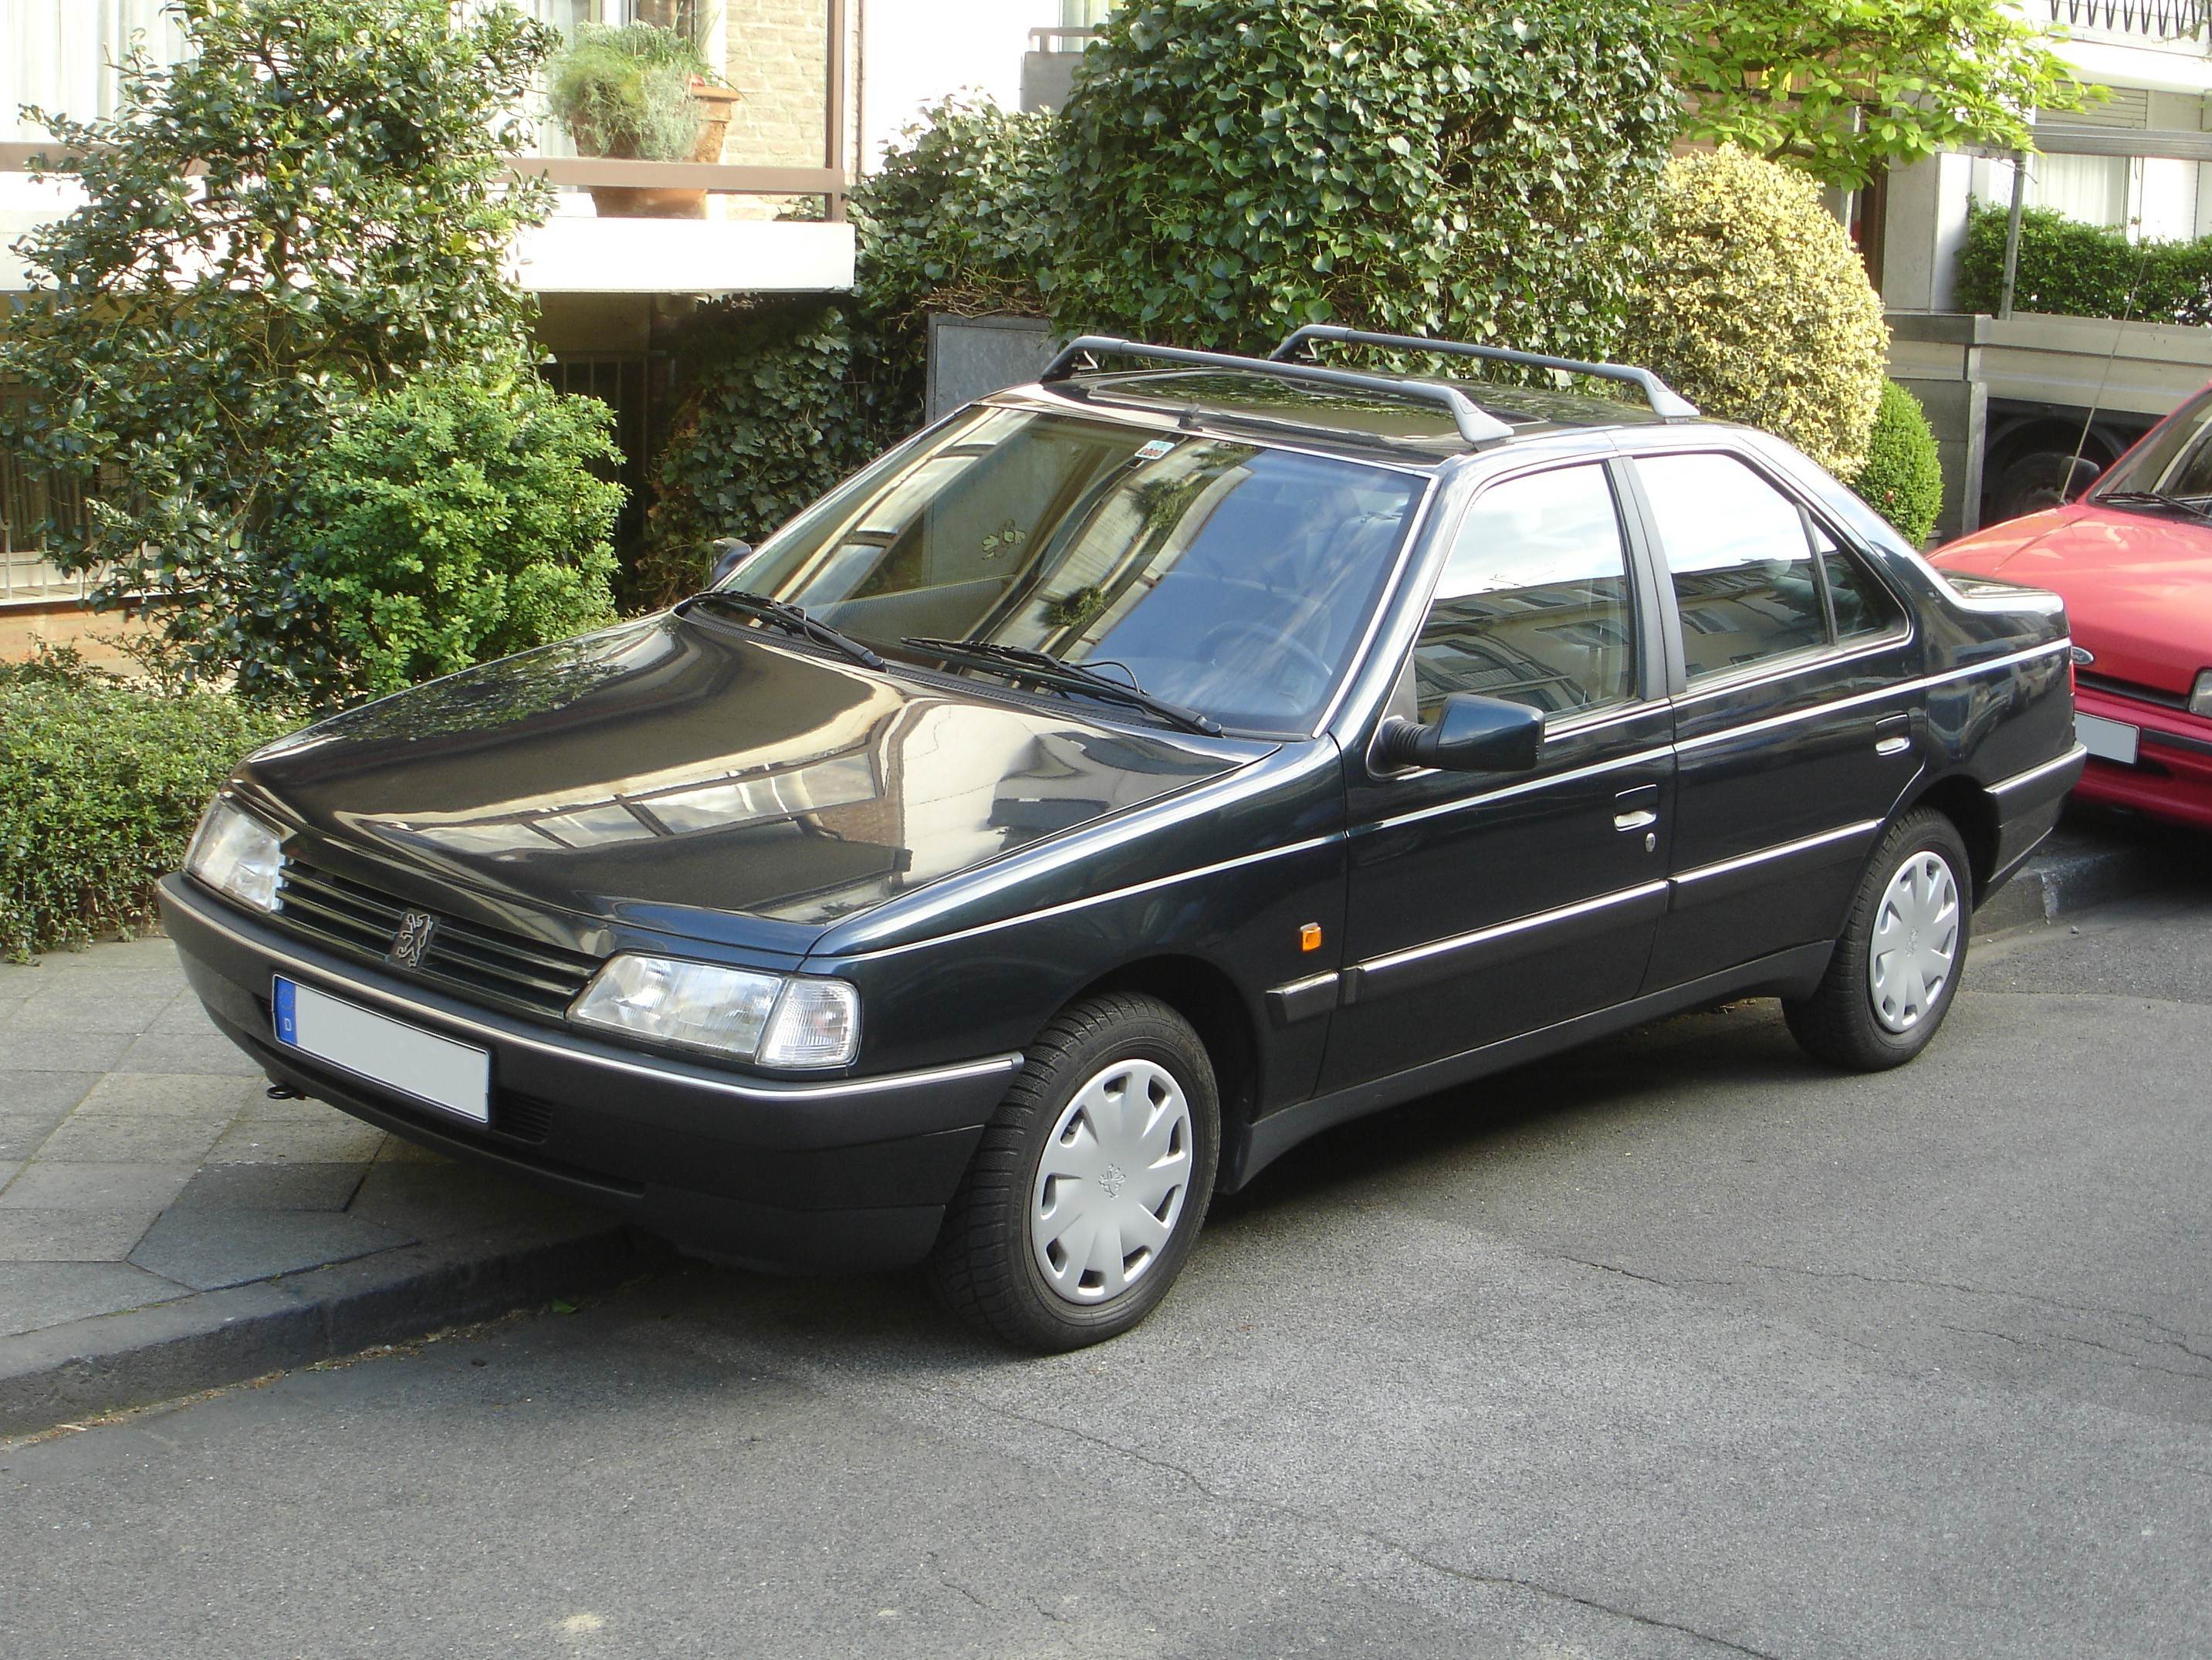 Description Peugeot-405-Limousine-Modell-1993.jpg